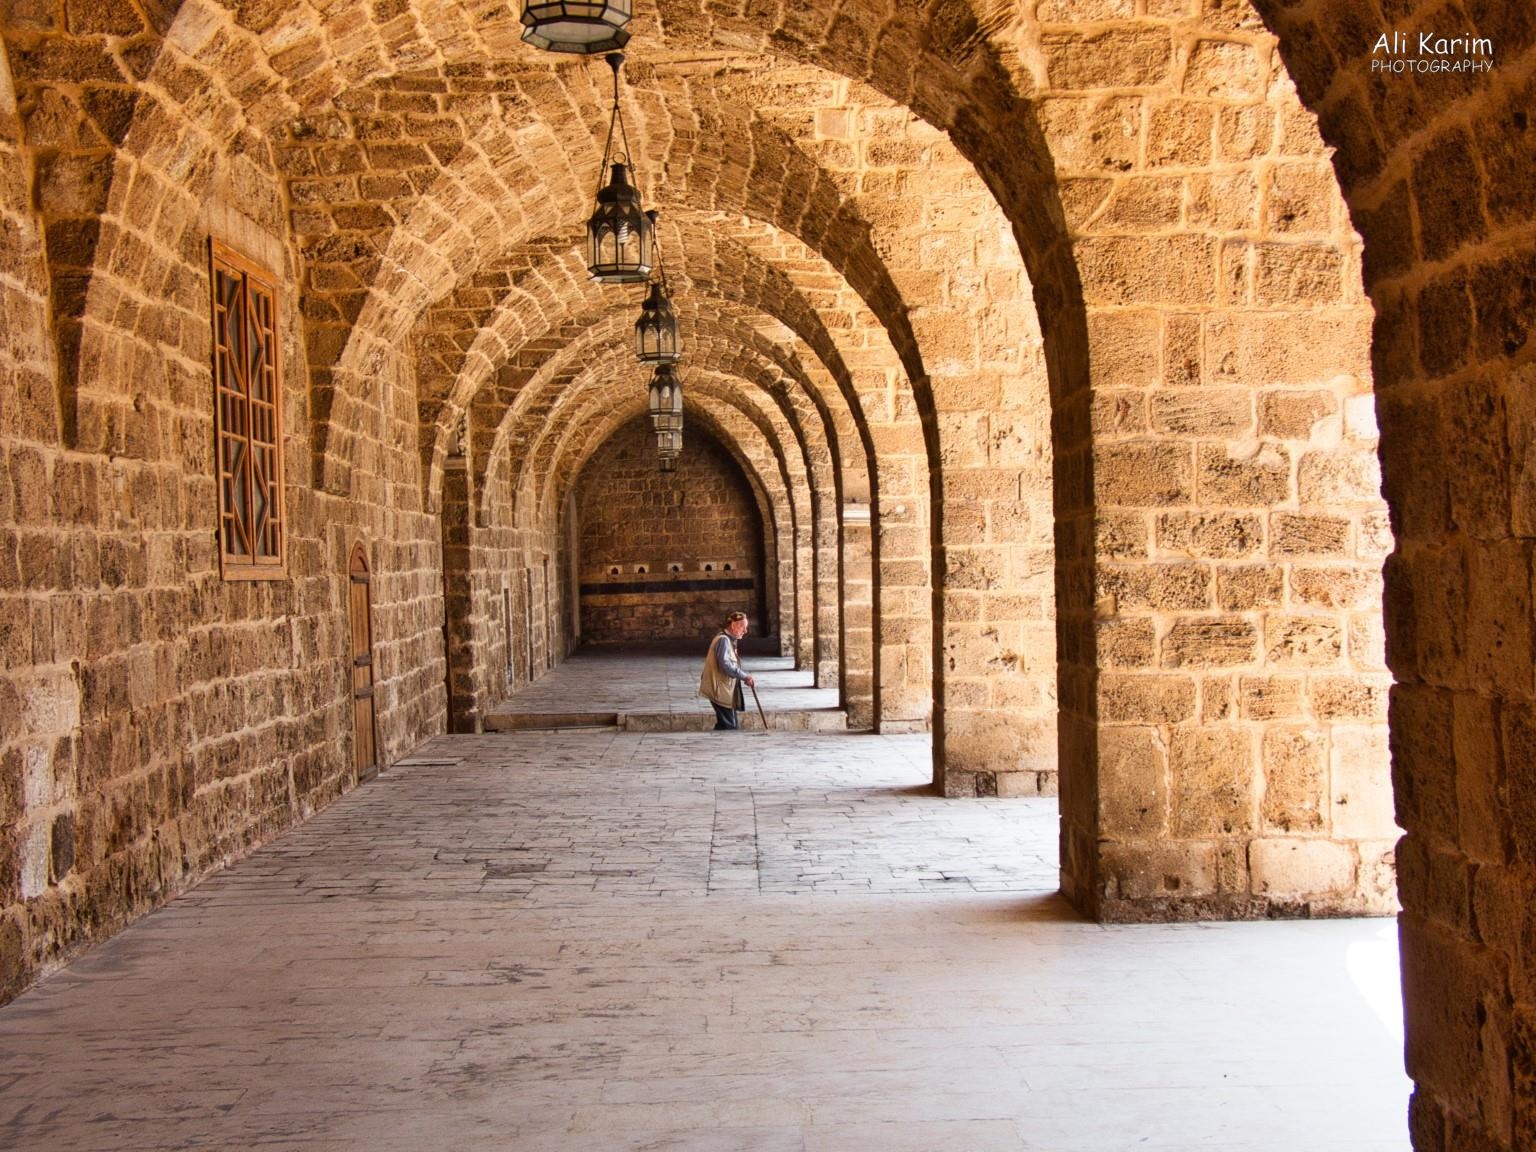 Tripoli Lebanon Courtyard inside the Grand Mosque, the quiet before prayer time